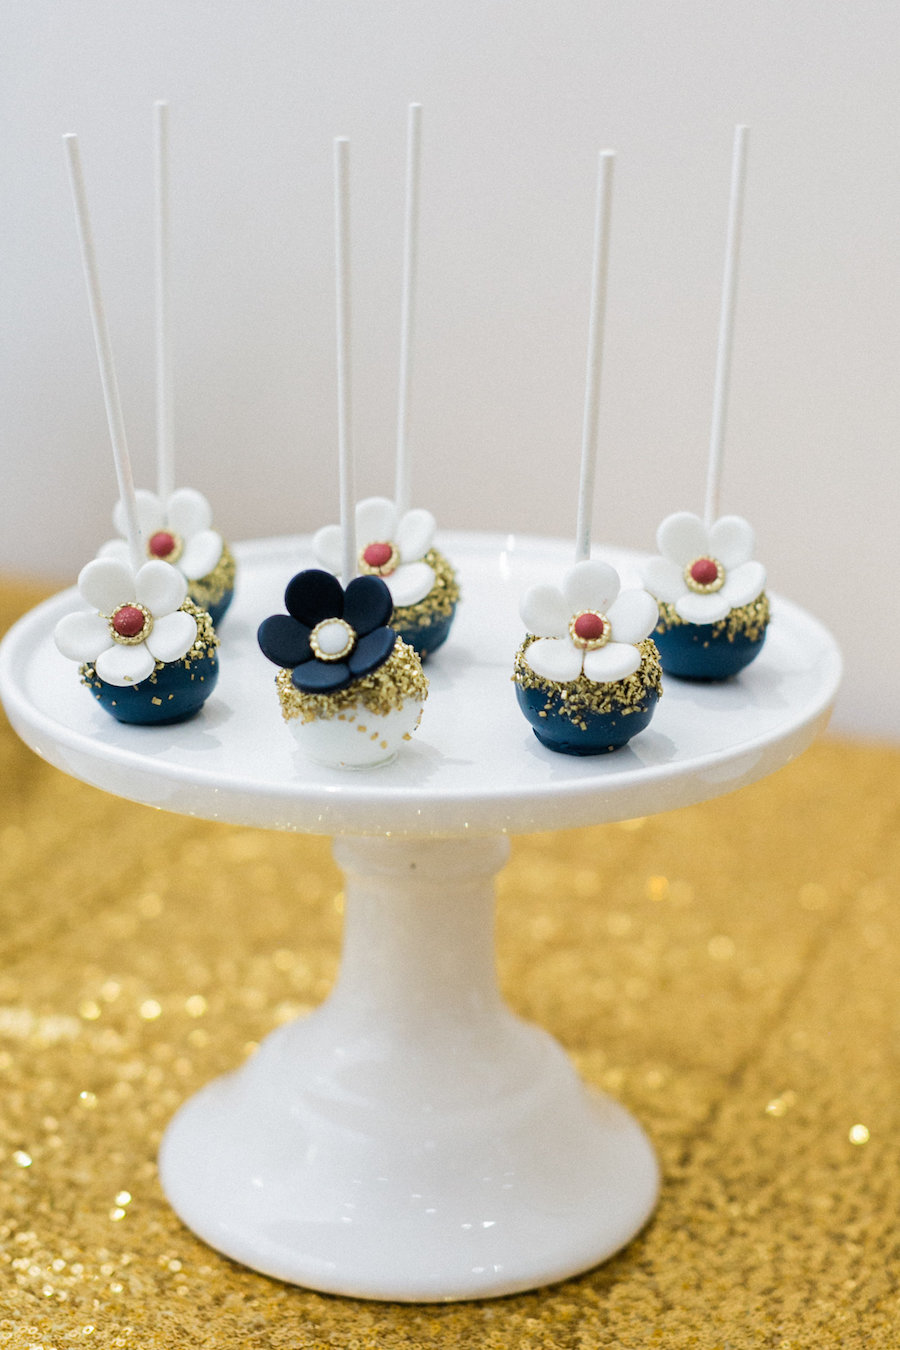 Tampa Wedding Cakepops with White, Navy and Gold Floral Design by Sweetly Dipped Confections   Wedding Dessert Table Favorites on Gold Sequin Linen